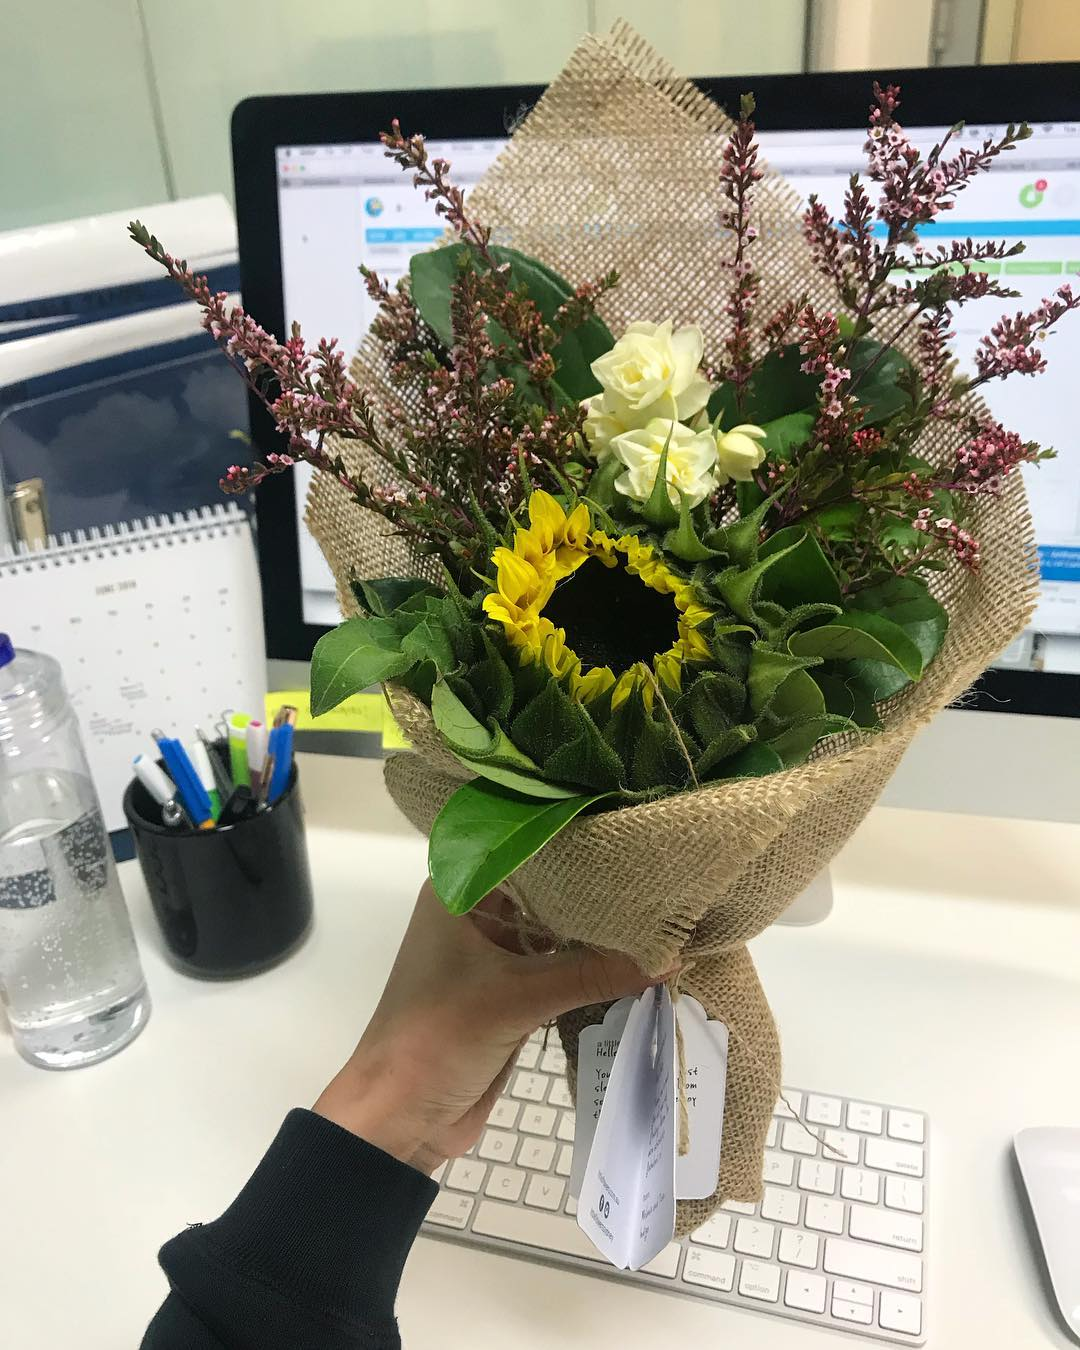 Beautiful flowers from a happy client after successfully placing a Lending Advisor for them ️🏼 Thank you